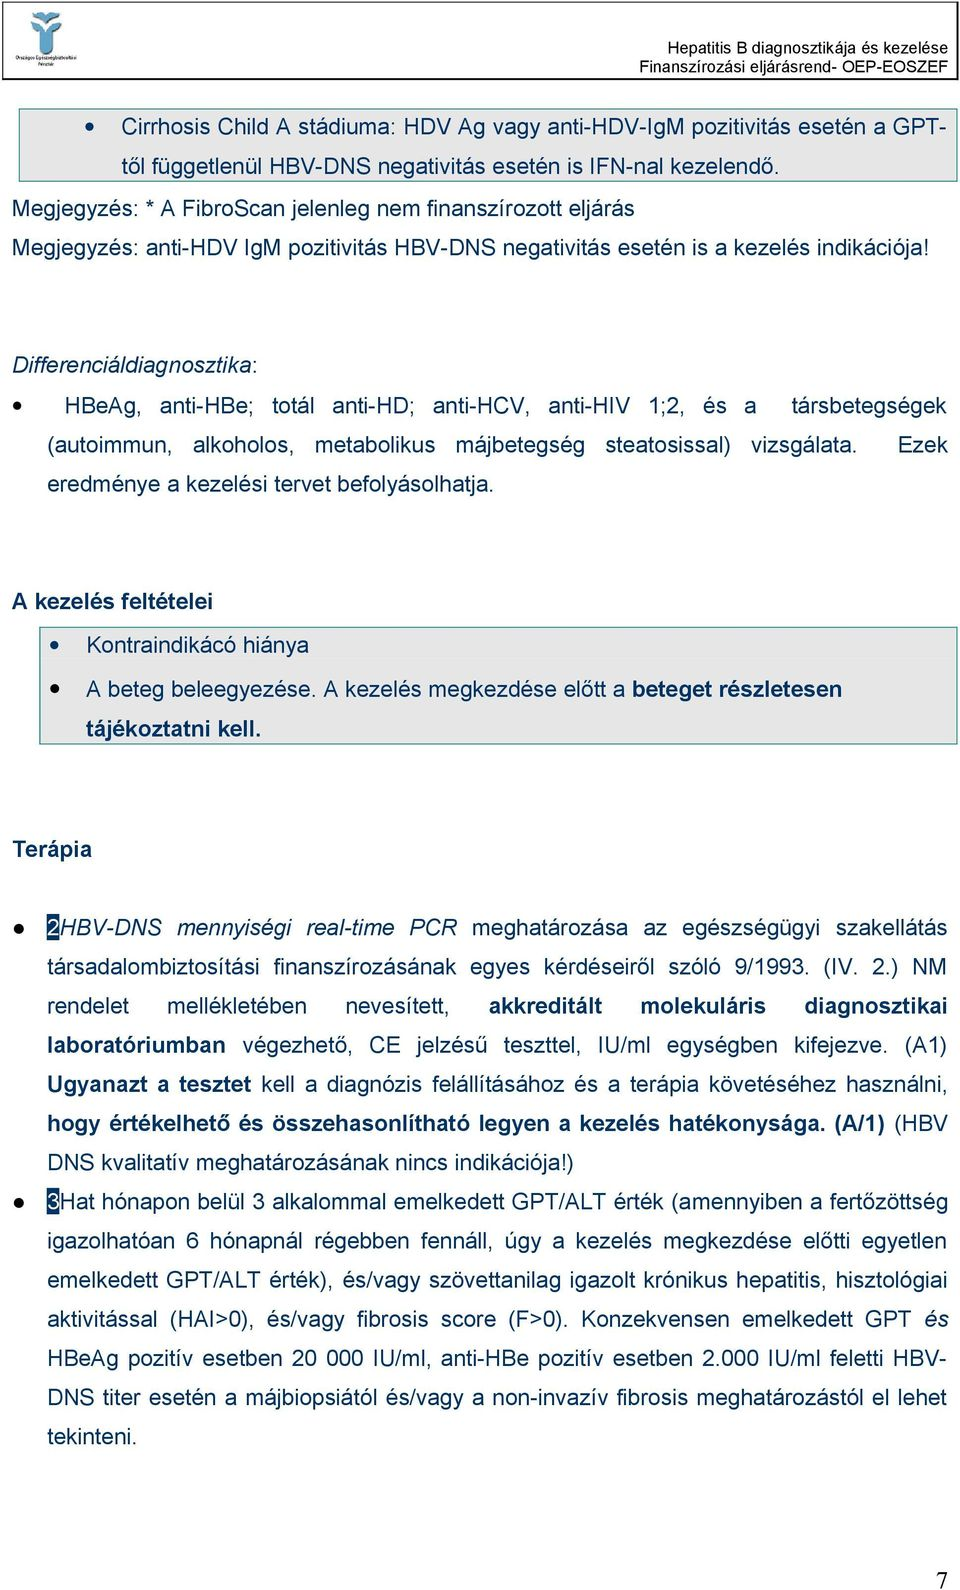 Differenciáldiagnosztika: HBeAg, anti-hbe; totál anti-hd; anti-hcv, anti-hiv 1;2, és a társbetegségek (autoimmun, alkoholos, metabolikus májbetegség steatosissal) vizsgálata.